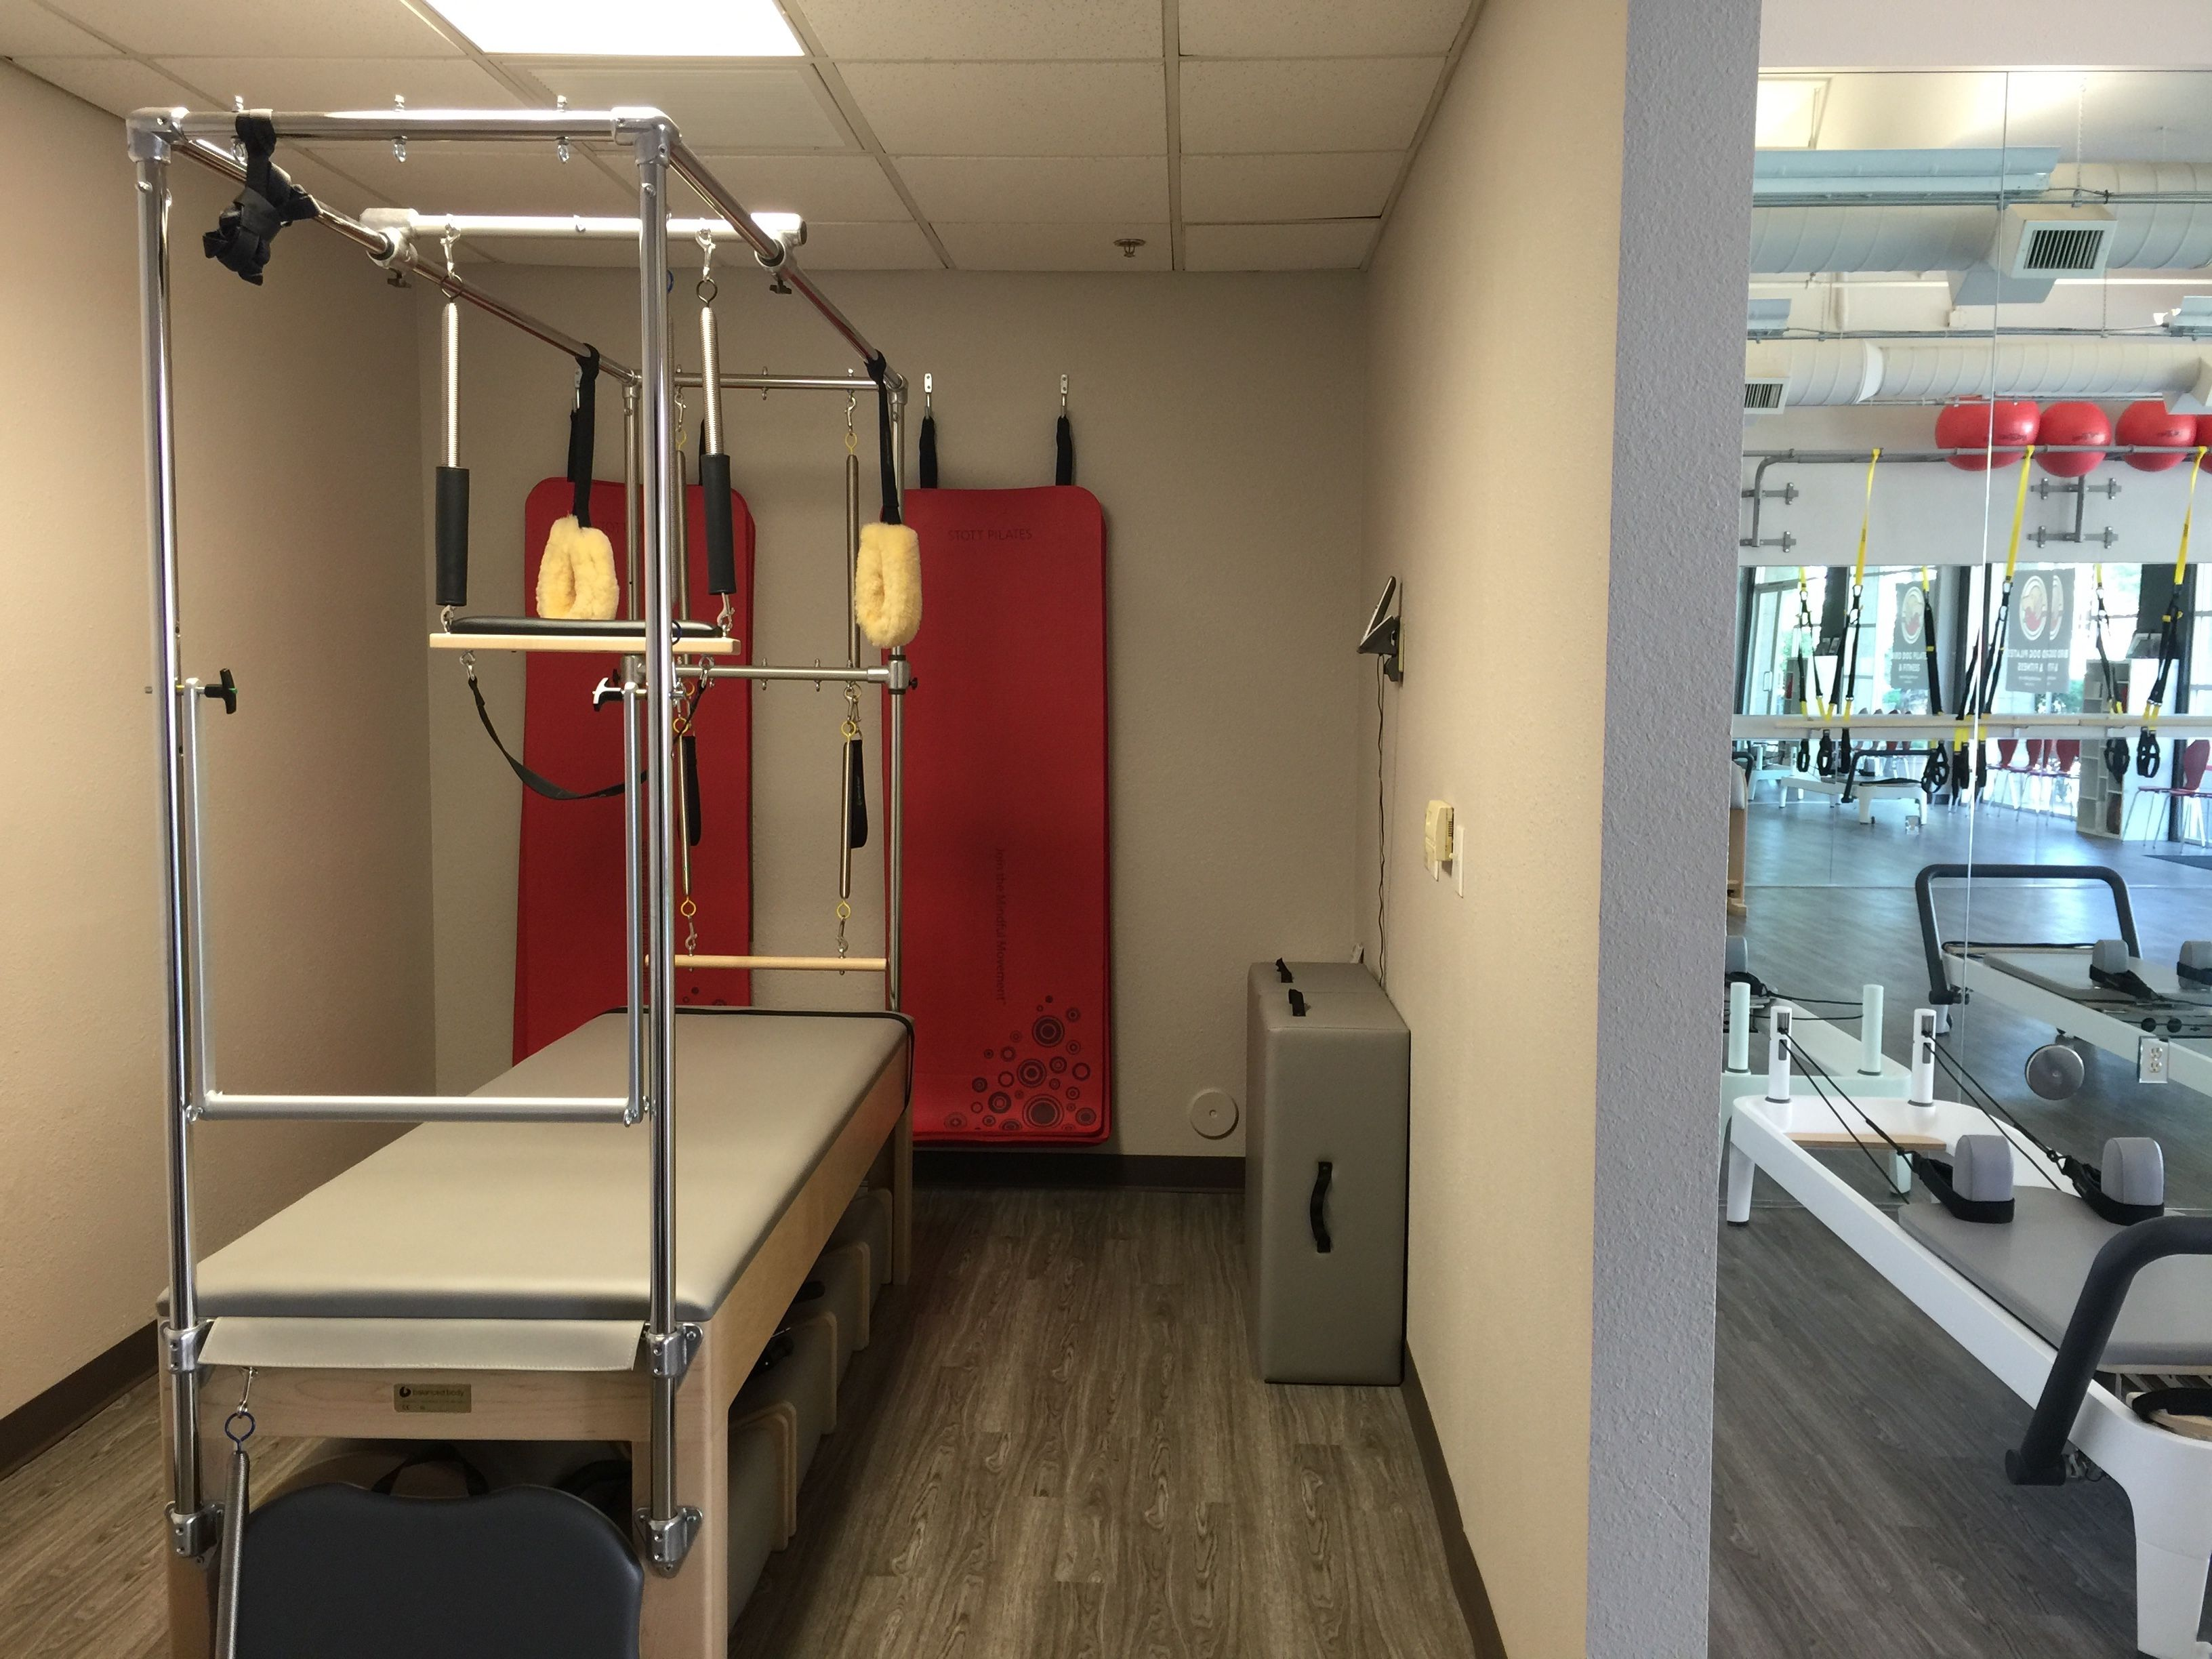 Bird Dog Pilates & Fitness Private Training Space and glimpse of main studio space.